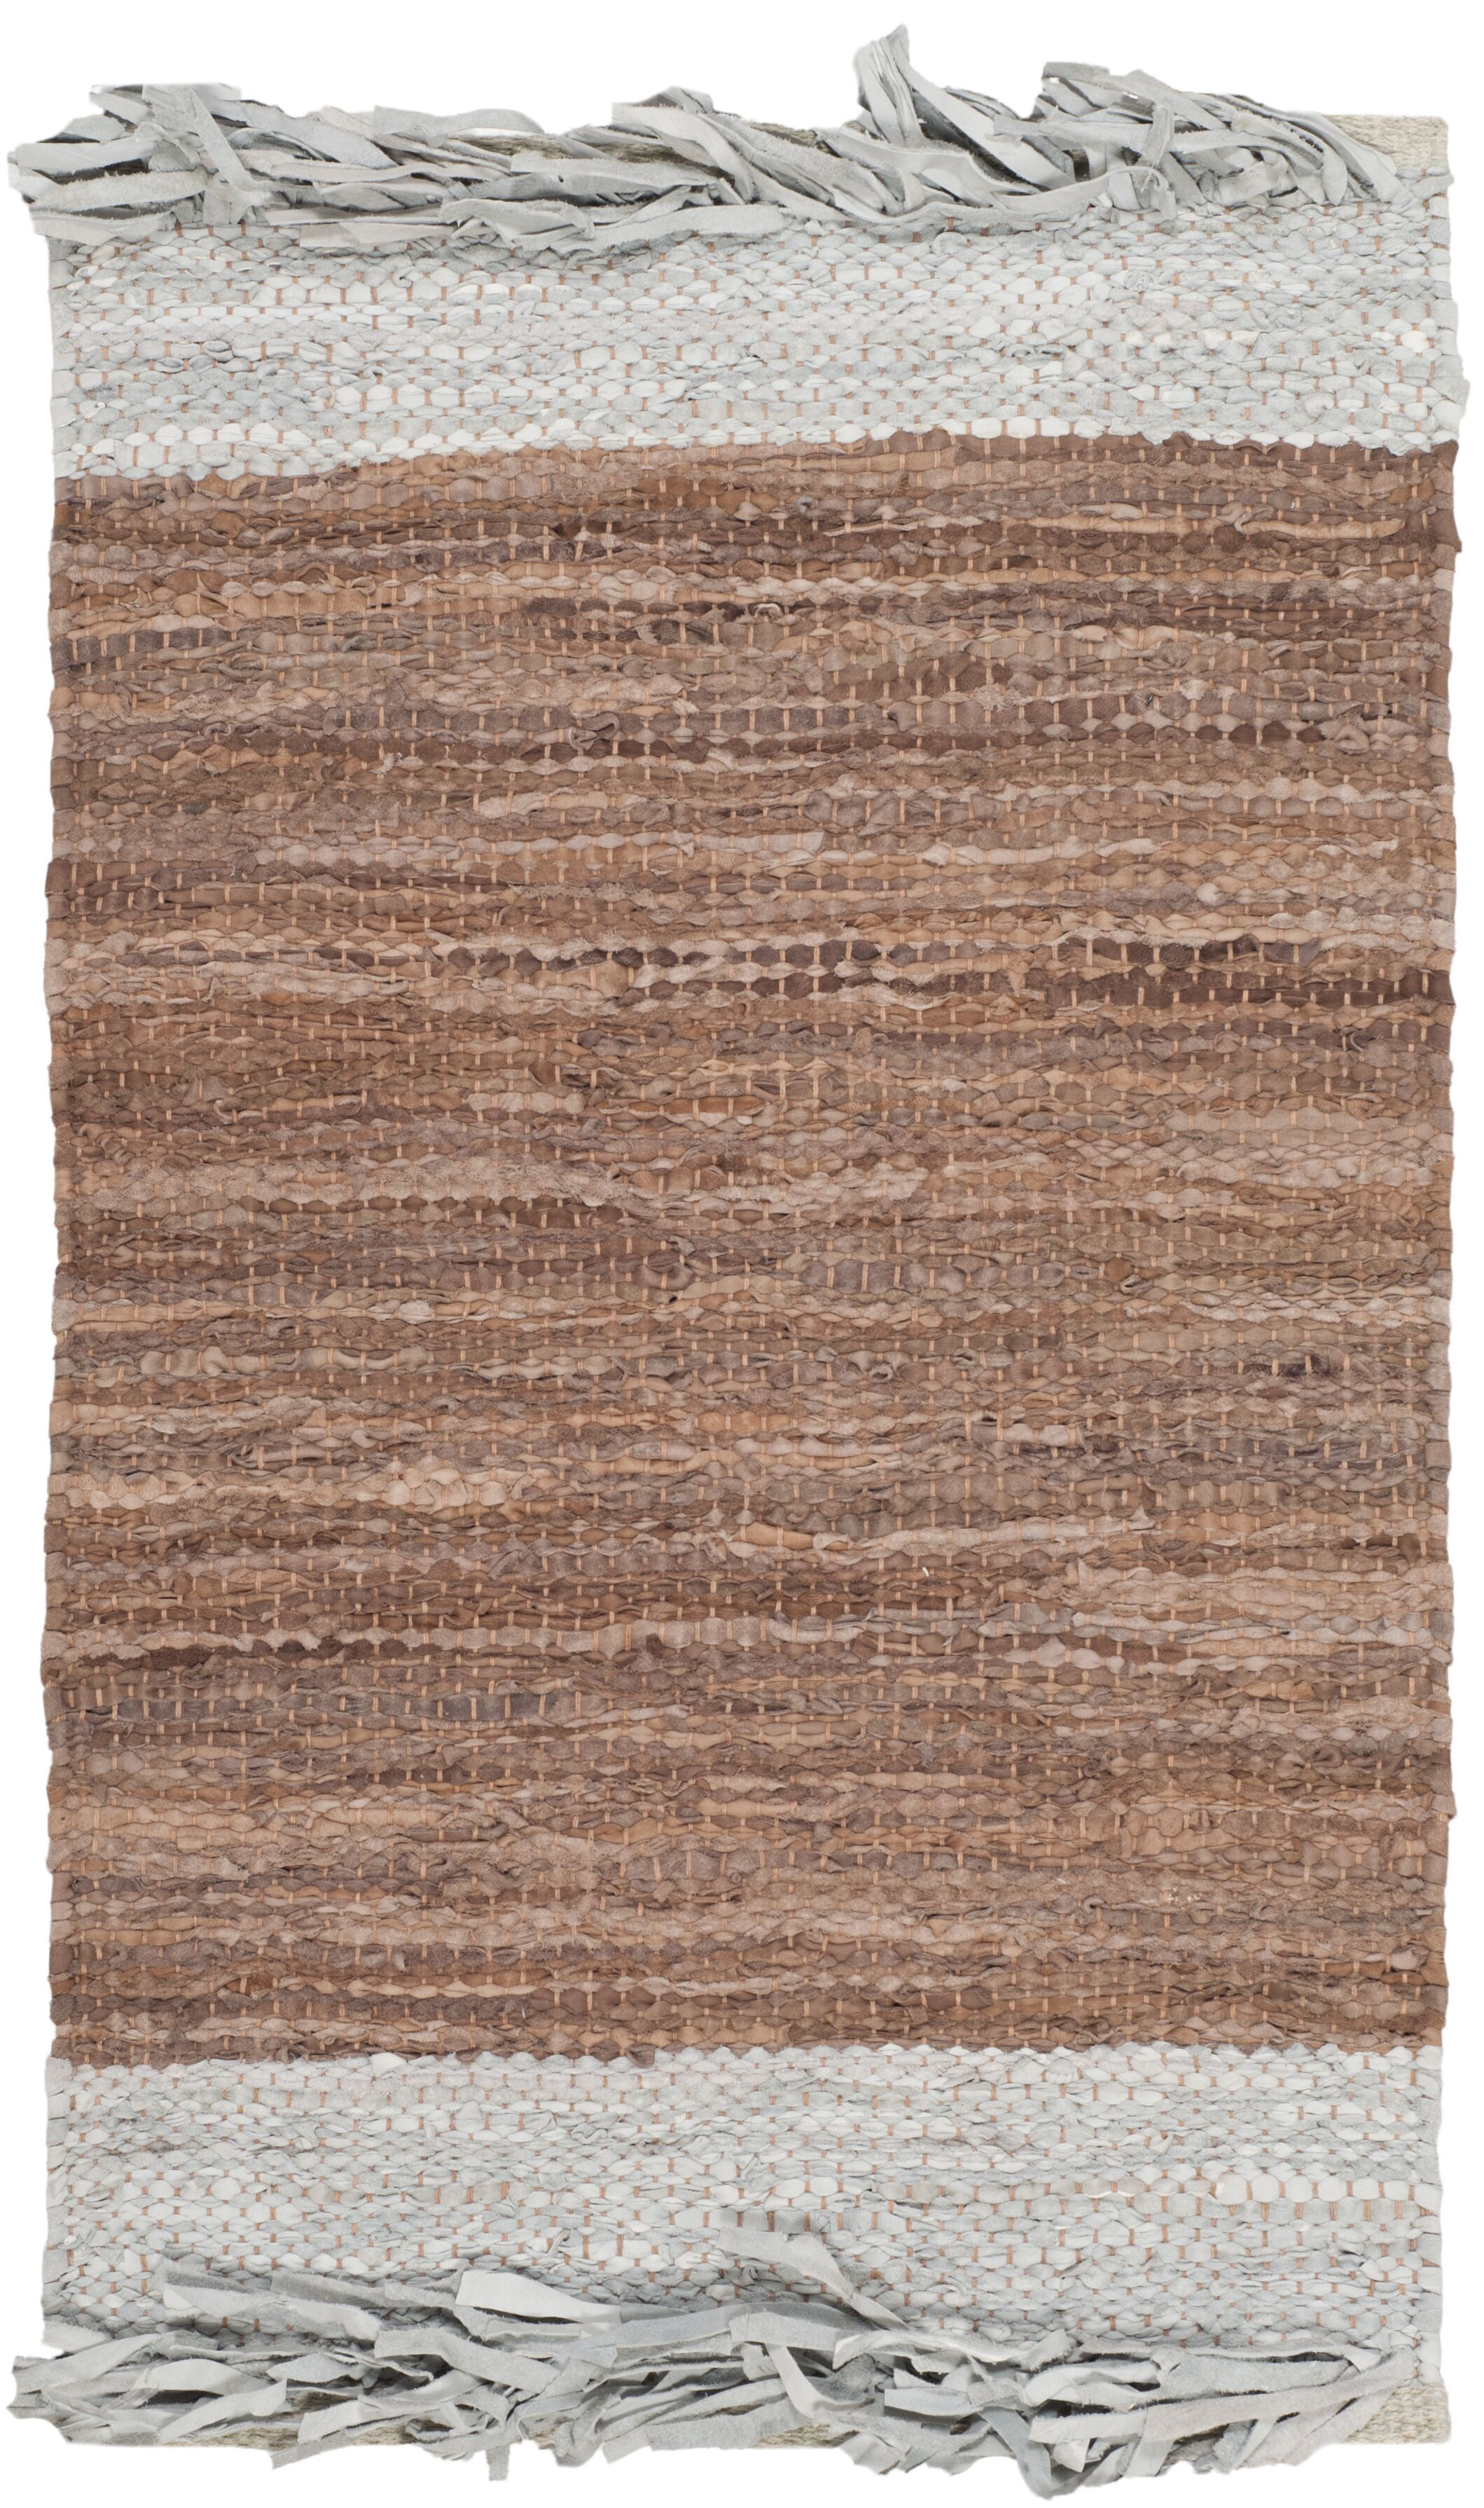 Glostrup Hand Hooked Brown Area Rug Rug Size: Rectangle 6' x 9'